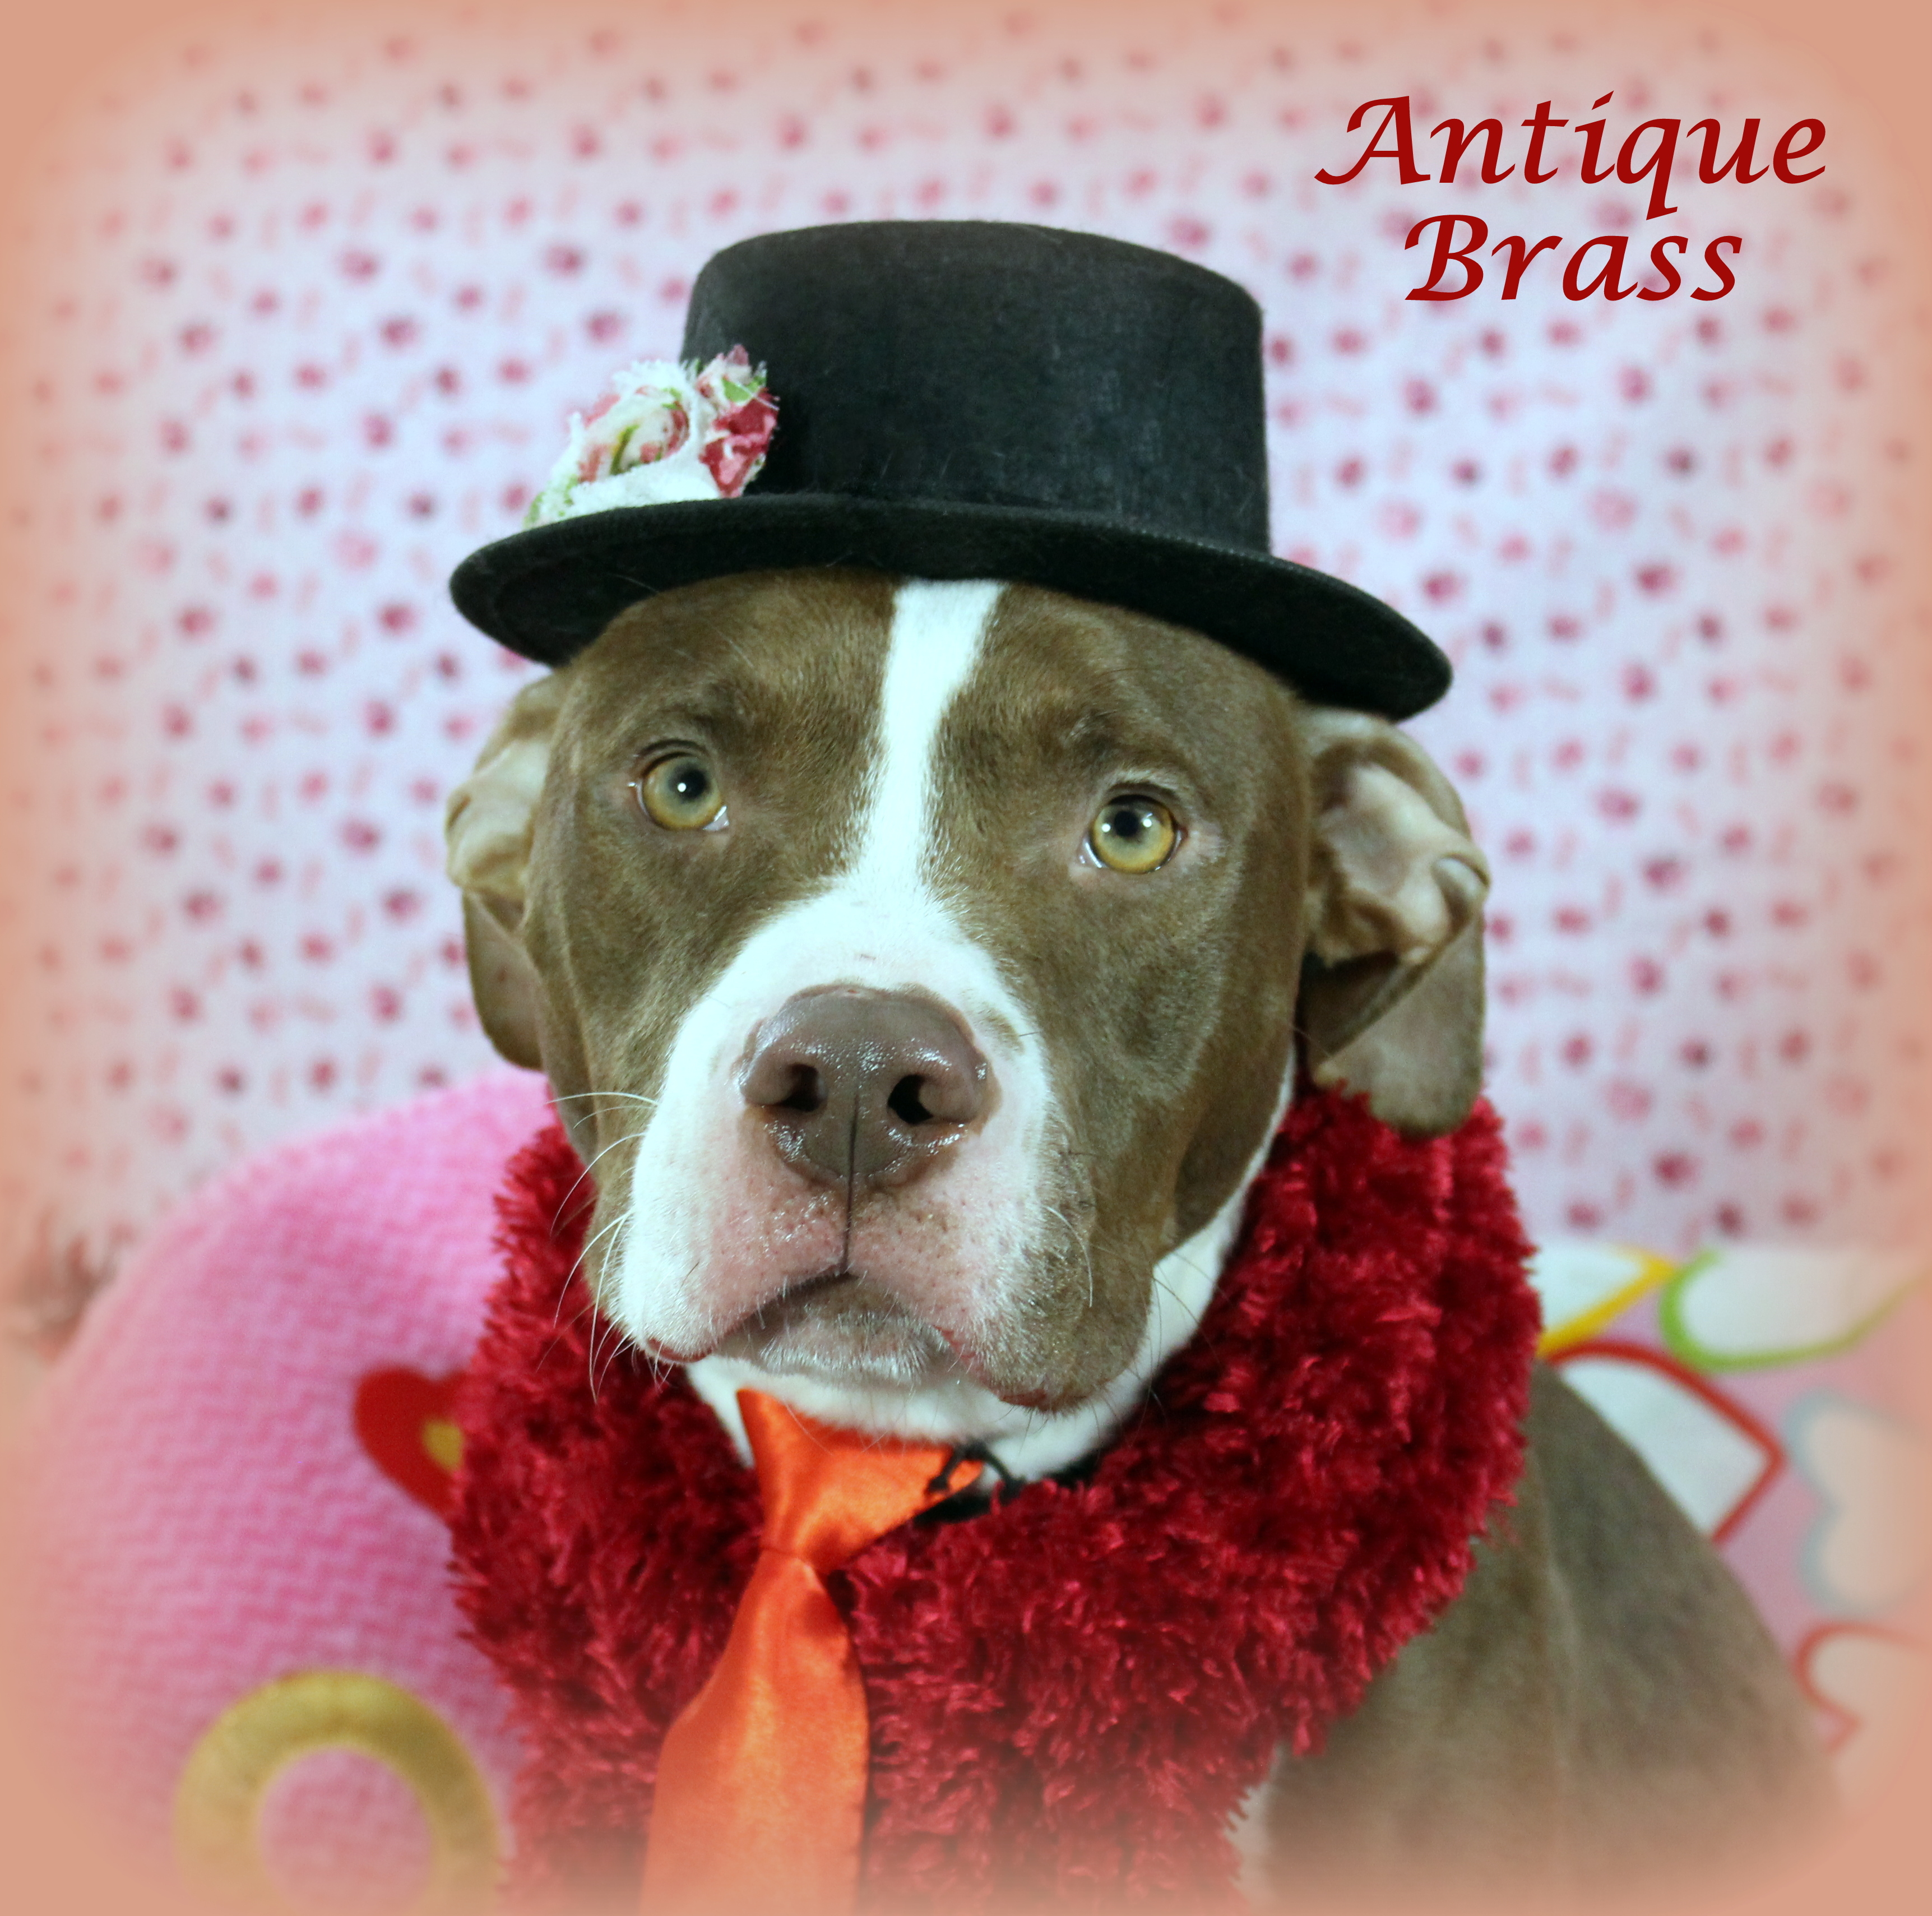 Antique Brass (Gentle & Loving Boy, Good with Kids & Submissive with Dogs)